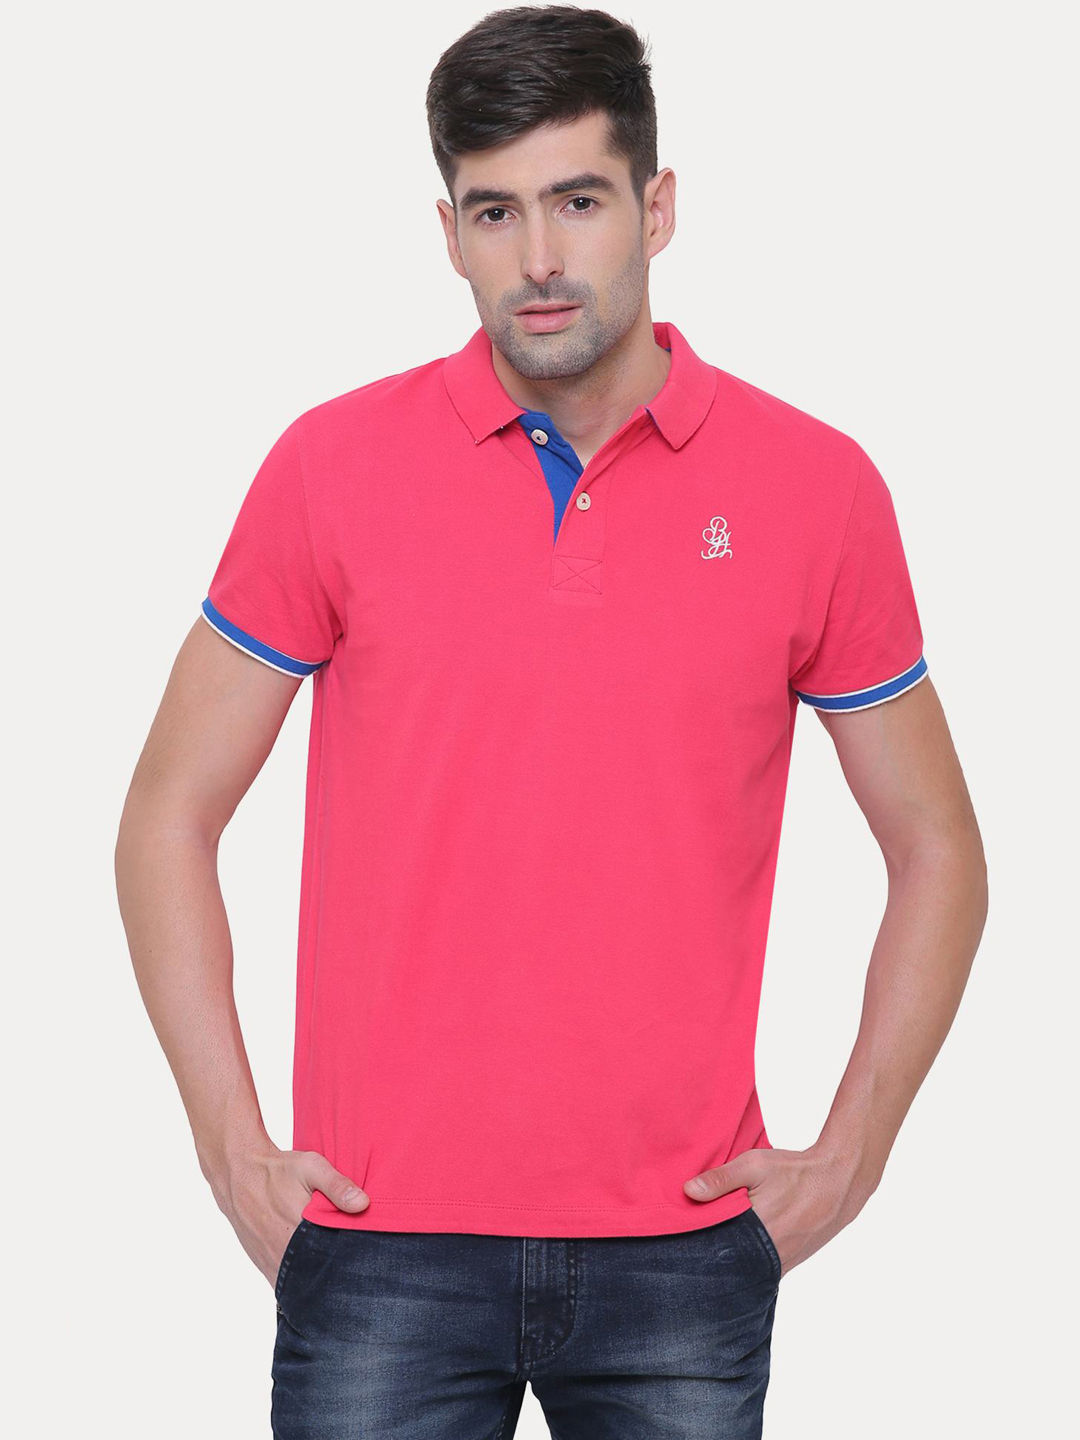 FUCHSIA SOLID POLO T-SHIRT